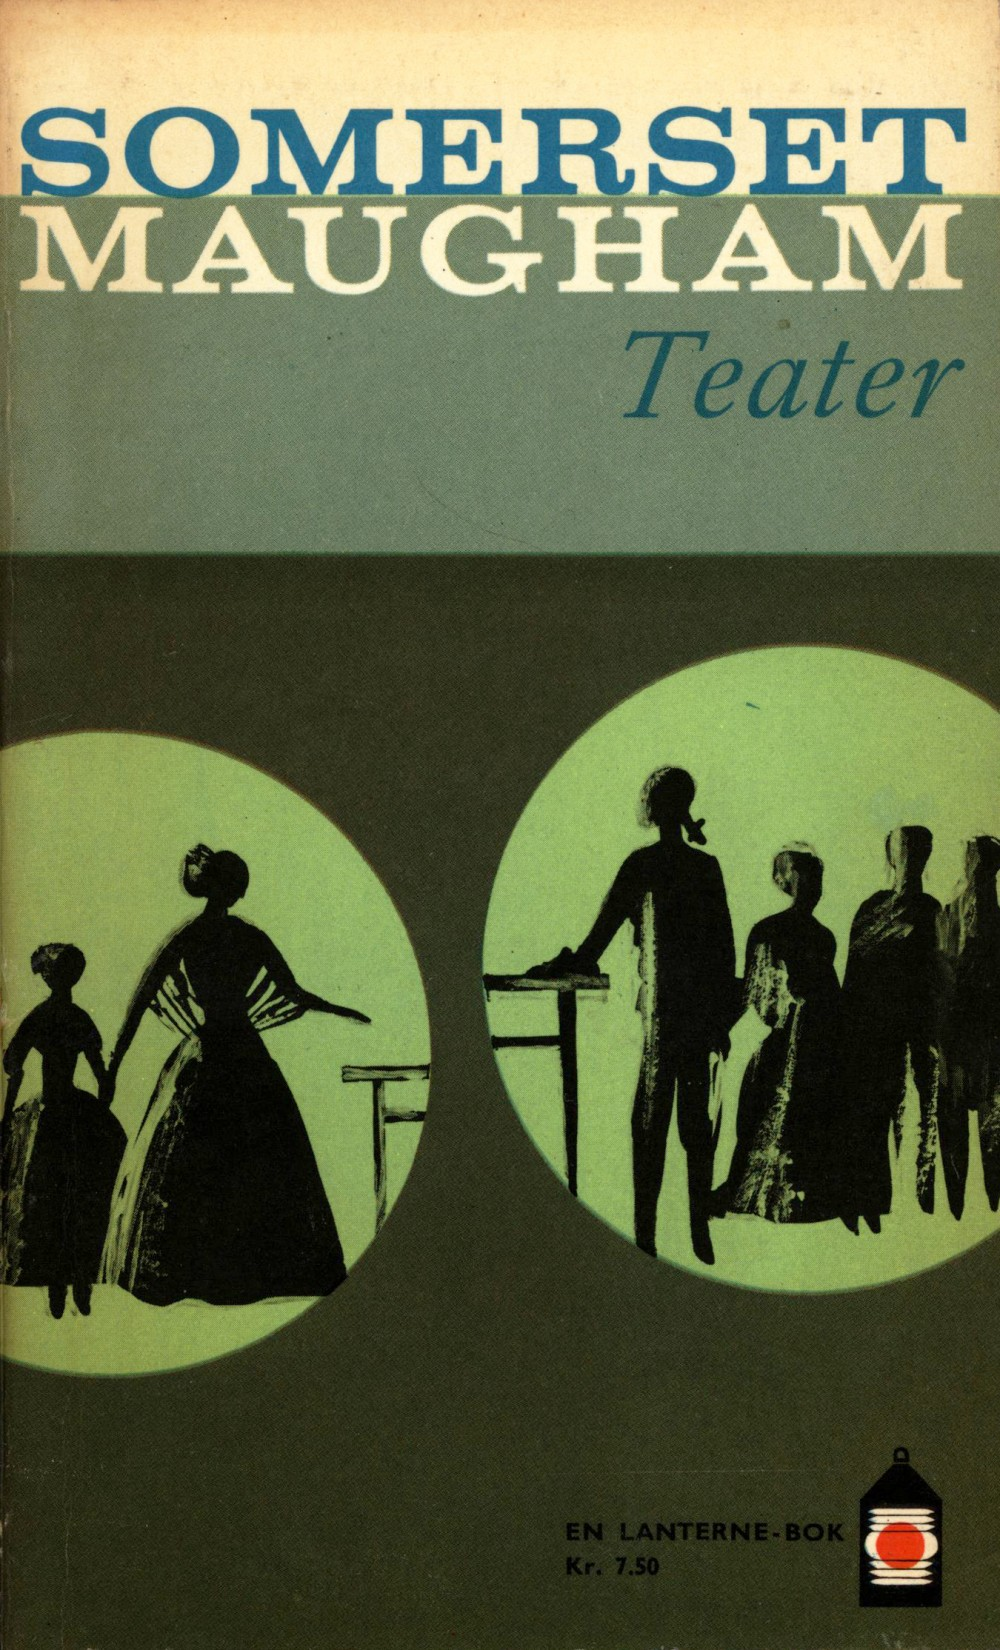 W. Somerset Maugham: Teater